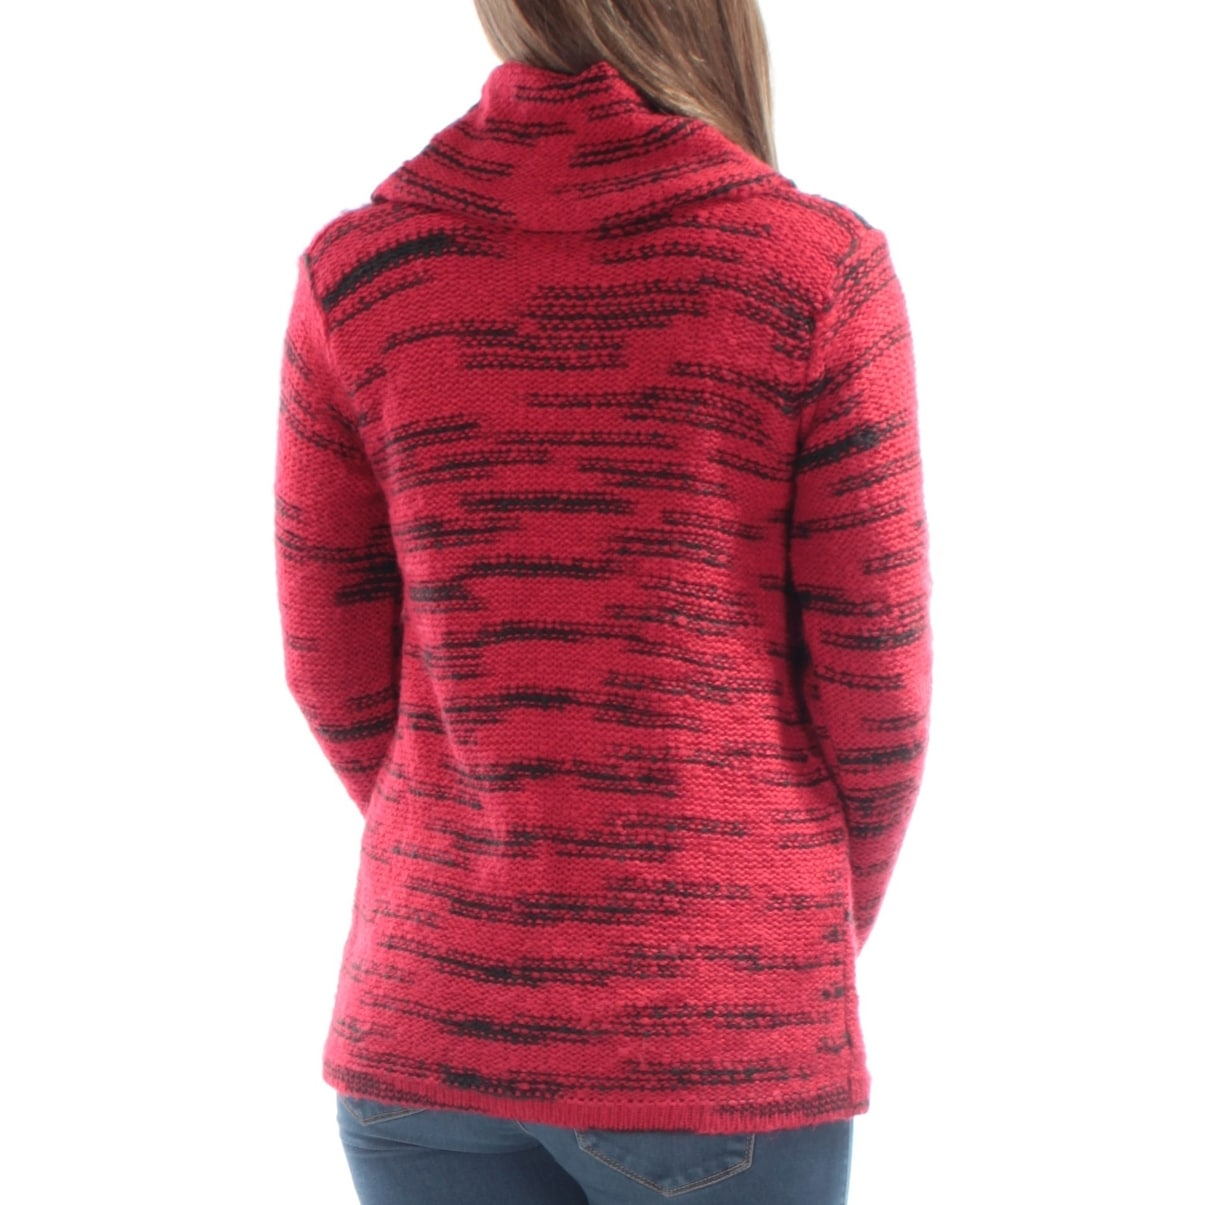 1c1e0036dd Shop KENSIE Womens Red Sheer Knitted Long Sleeve Cowl Neck Sweater Size  S  - Free Shipping On Orders Over  45 - Overstock - 21215451